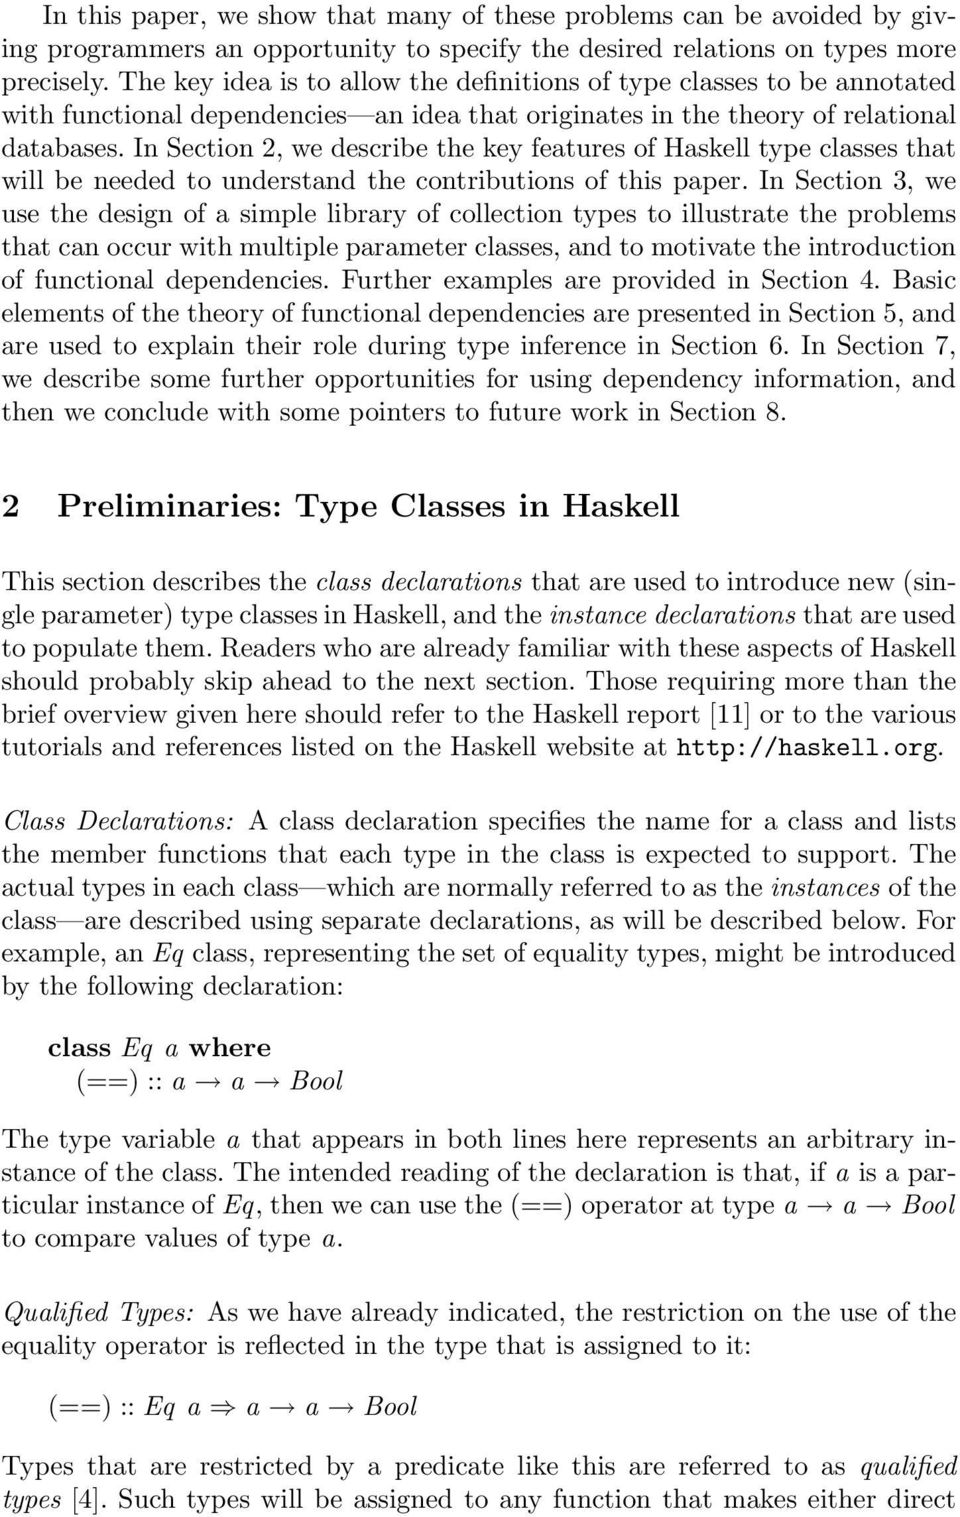 In Section 2, we describe the key features of Haskell type classes that will be needed to understand the contributions of this paper.